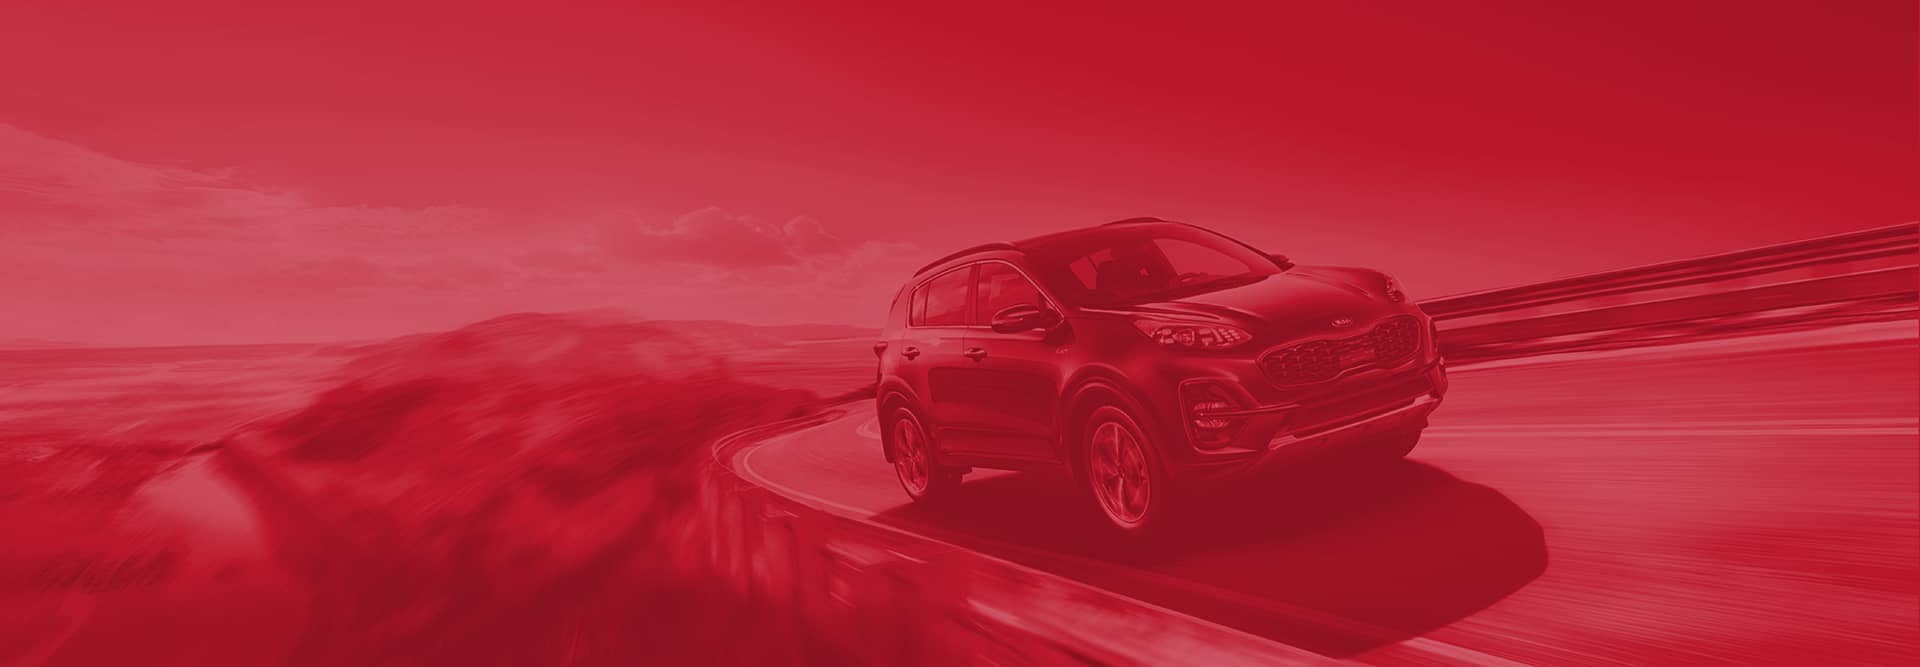 kia driving down mountain road with red overlay on whole image